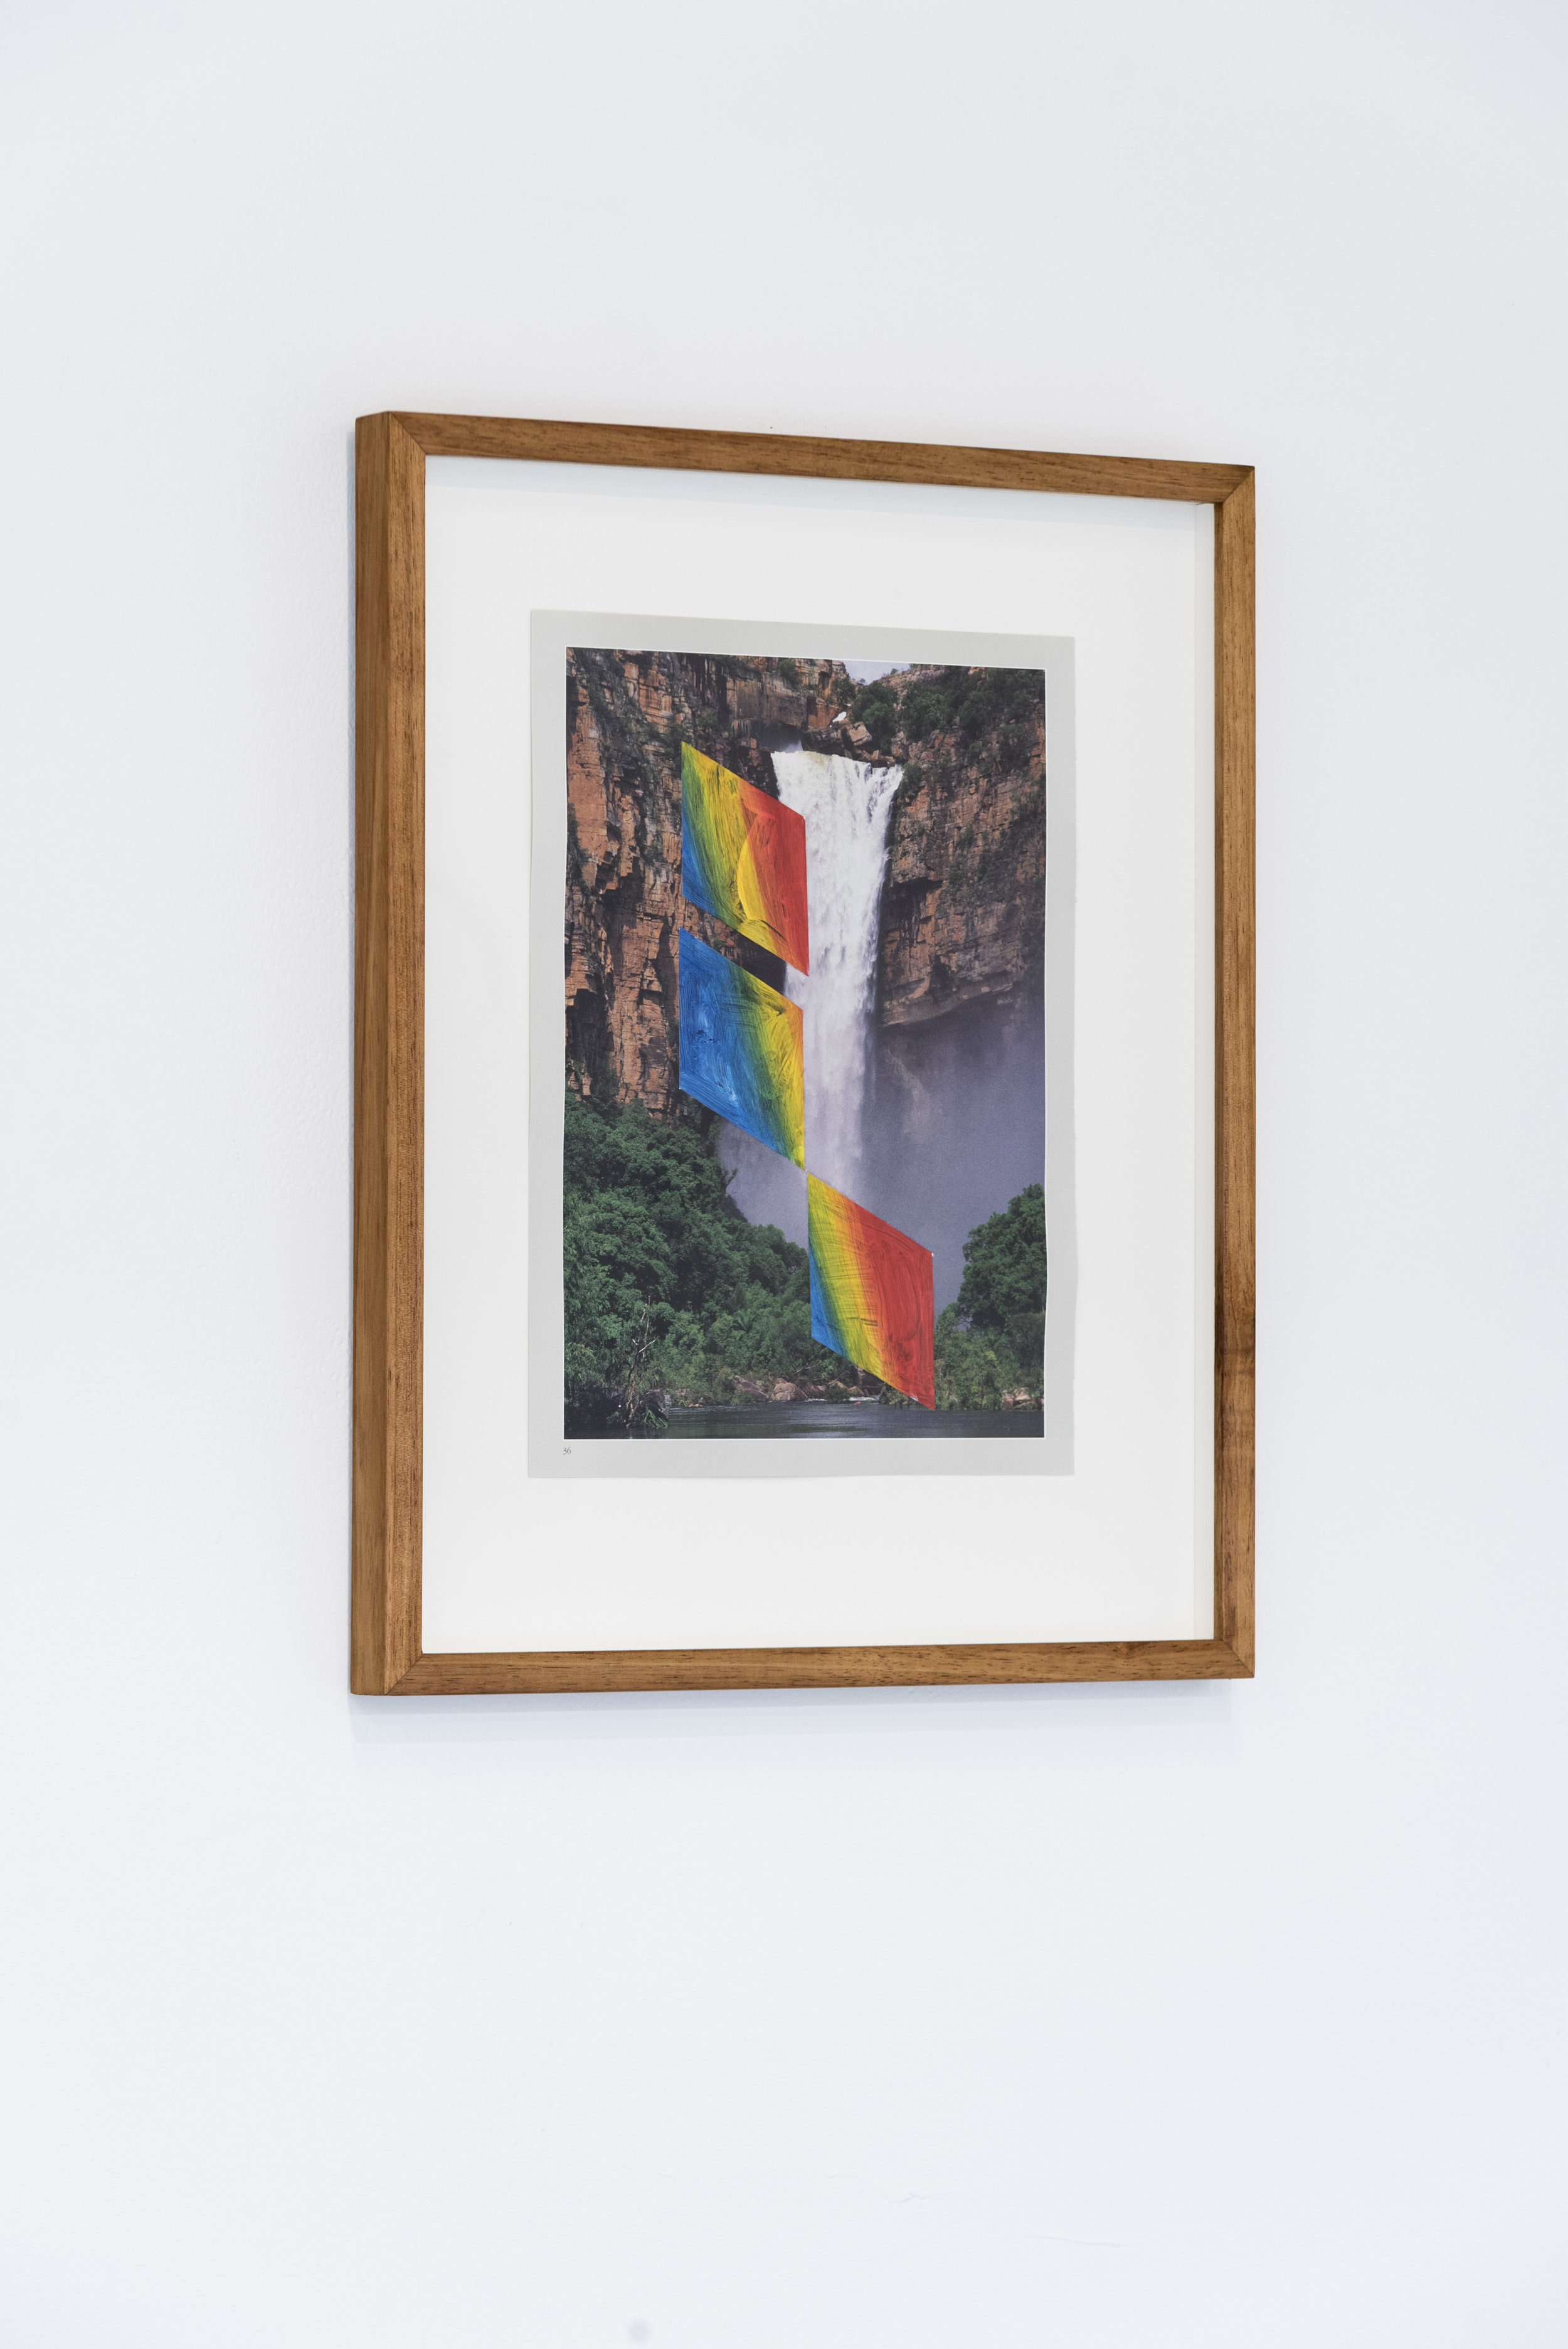 Maddison Kitching  At the End of the Rainbow #3  Oil and acrylic paint on page from Steve Parish's book Australia: The Gift  24.5 x 33cm  2018  Photo by Aaron Claringbold